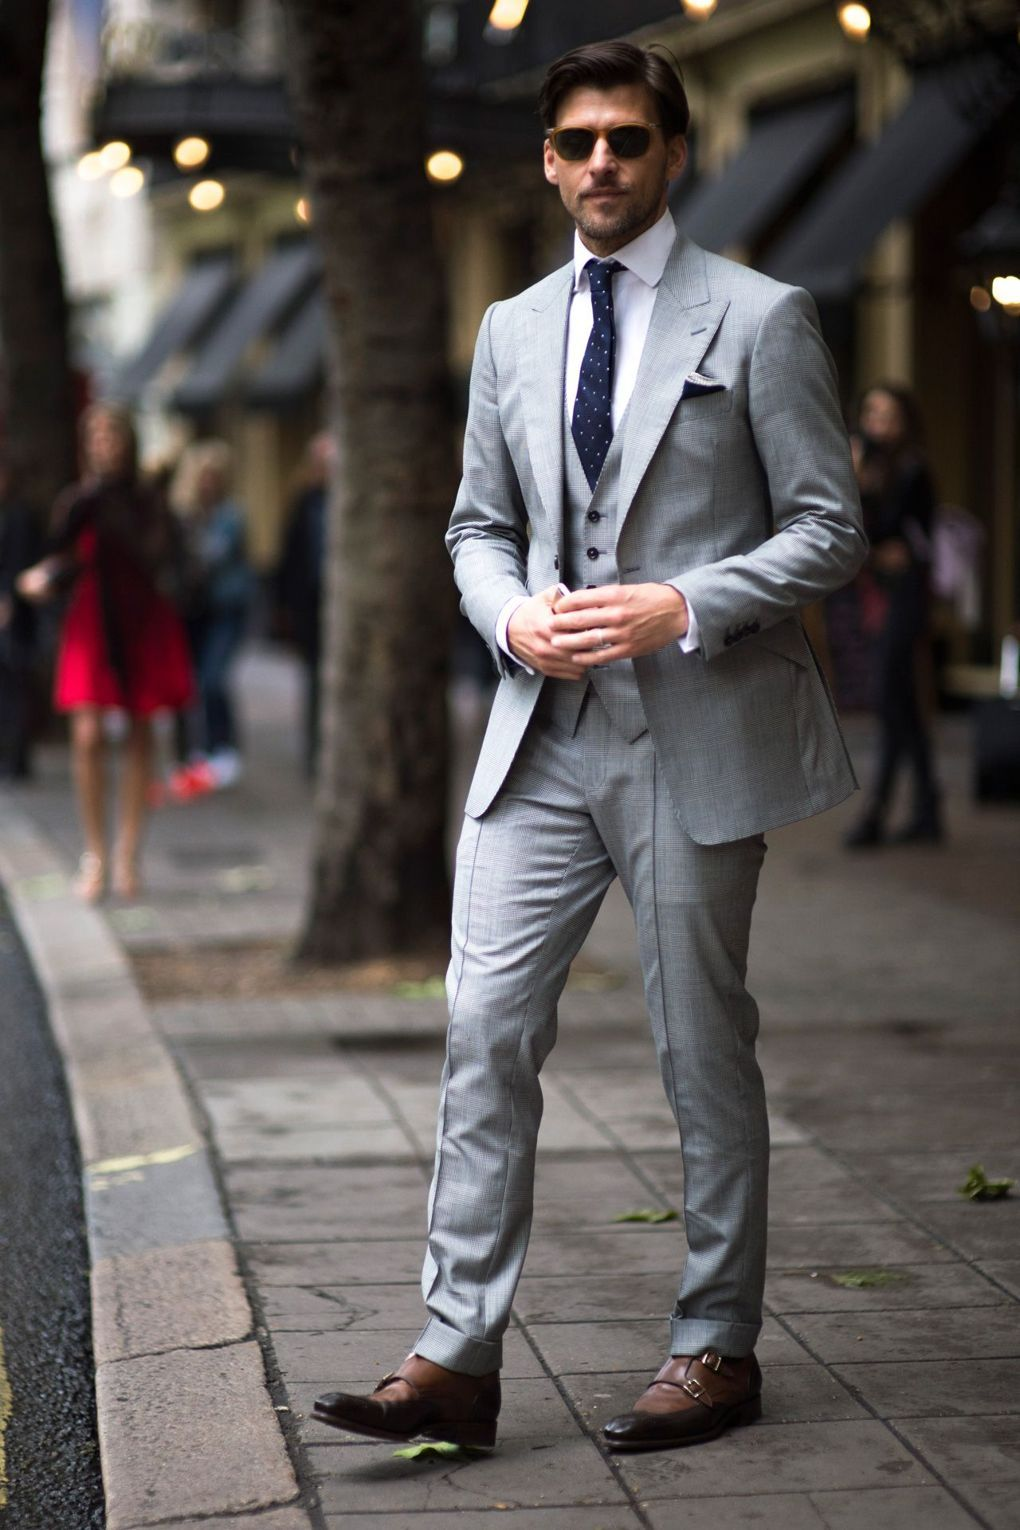 Pin By A J Anderfield On Men S Style Jackets Men Fashion Mens Street Style Stylish Mens Fashion